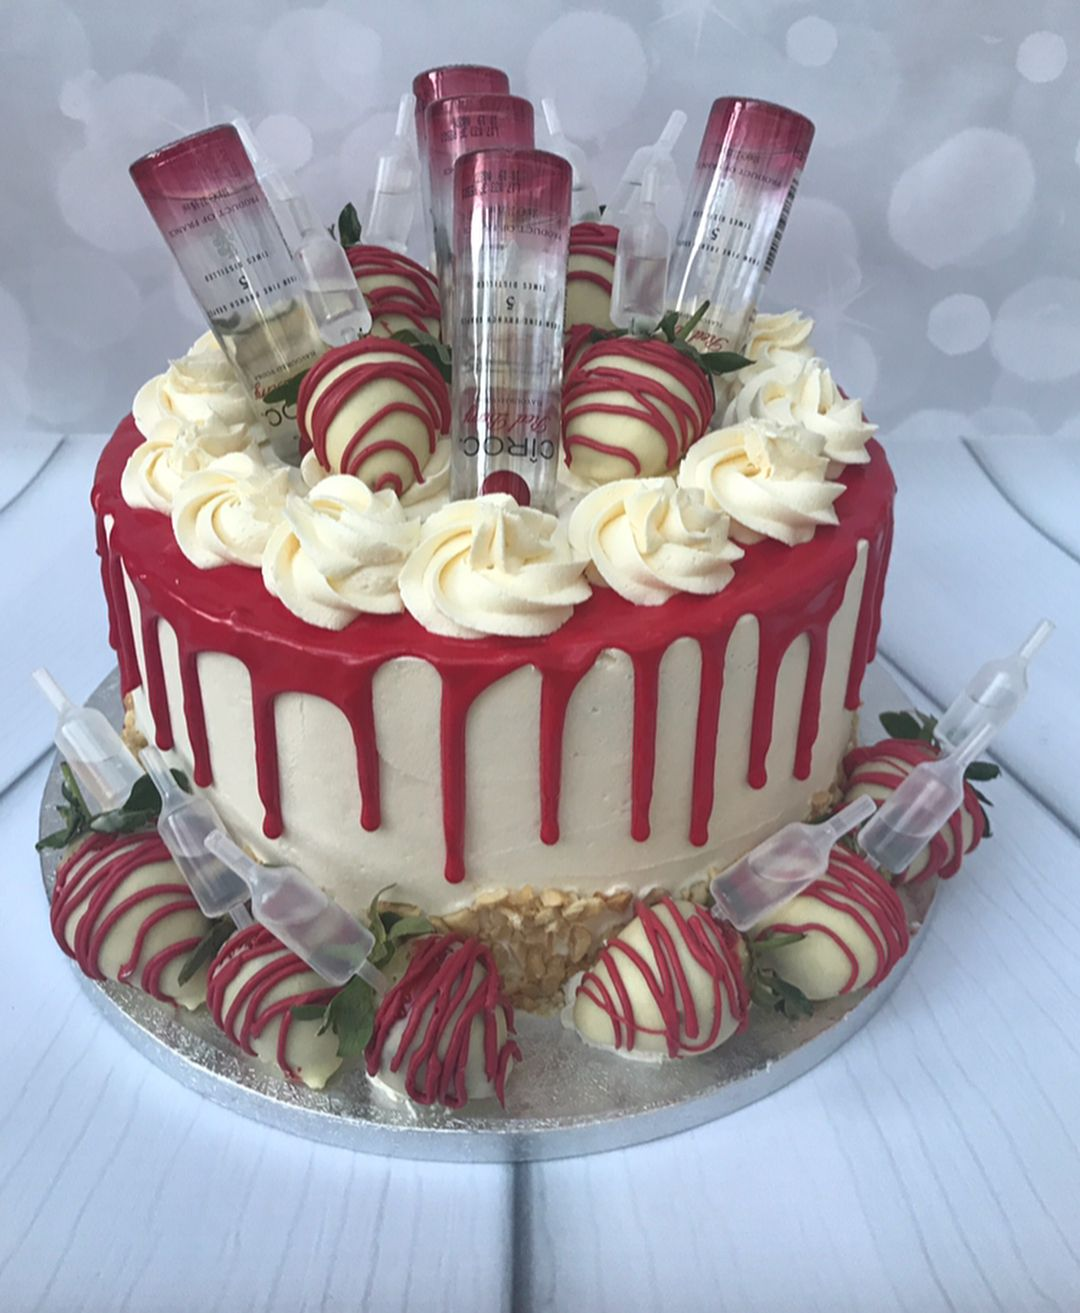 Pleasant So What Do You Think Could This Possibly Be The Cake Every1 Funny Birthday Cards Online Alyptdamsfinfo